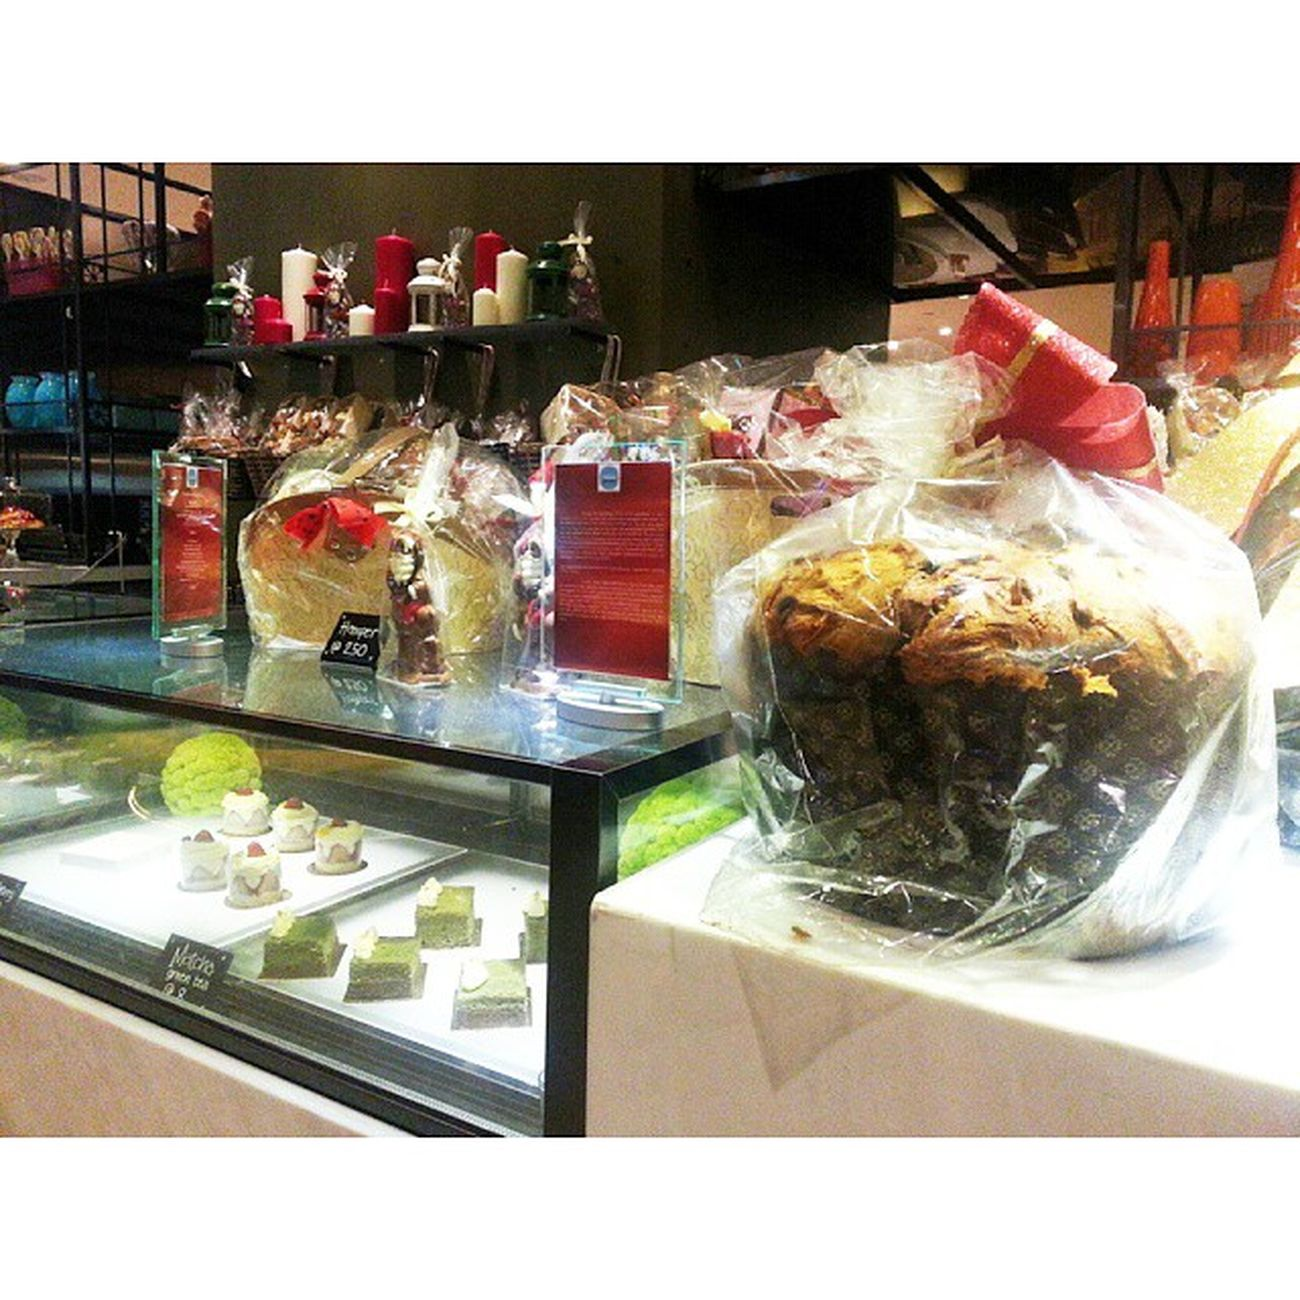 That's helluva huge muffin there! @panpacificsingapore Pacific Marketplace. Just look at the cakes on display. Instapastries Deli Cakes Dessert sweets sweettooth muffin festiveseason festive seasonsgreetings happyholidays instamood